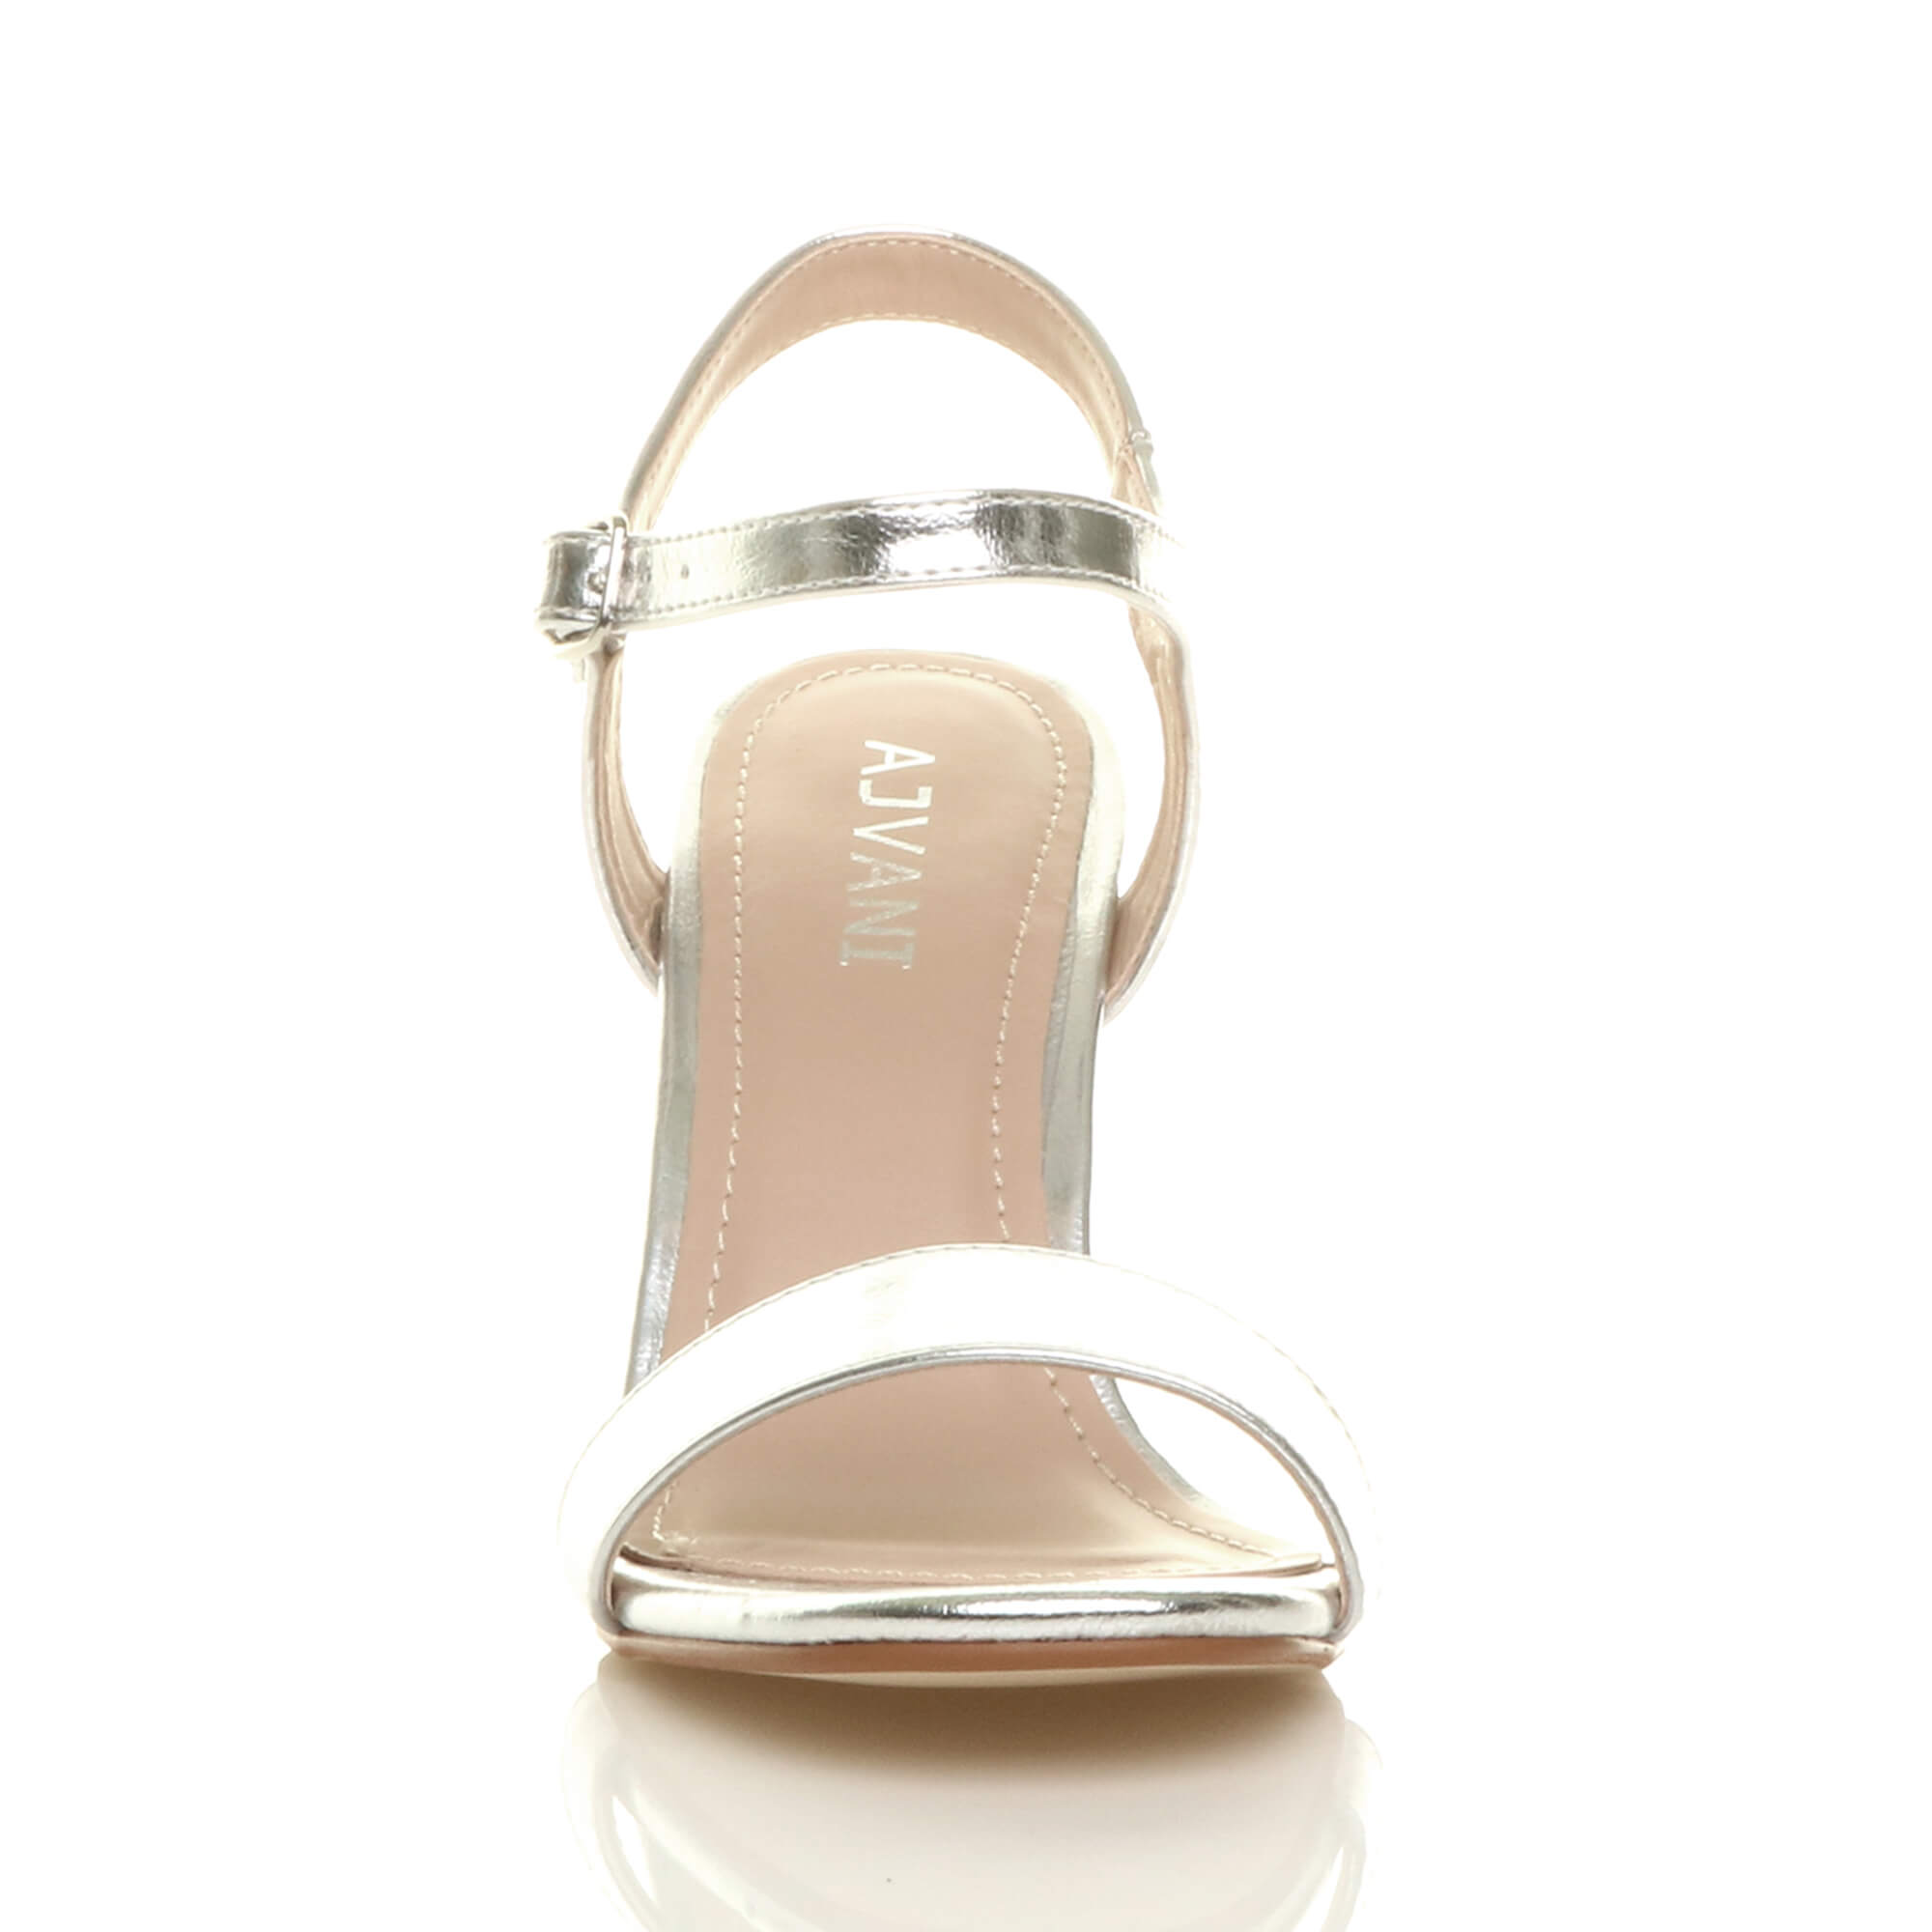 WOMENS-LADIES-HIGH-HEEL-BUCKLE-STRAPPY-BASIC-BARELY-THERE-SANDALS-SHOES-SIZE thumbnail 132